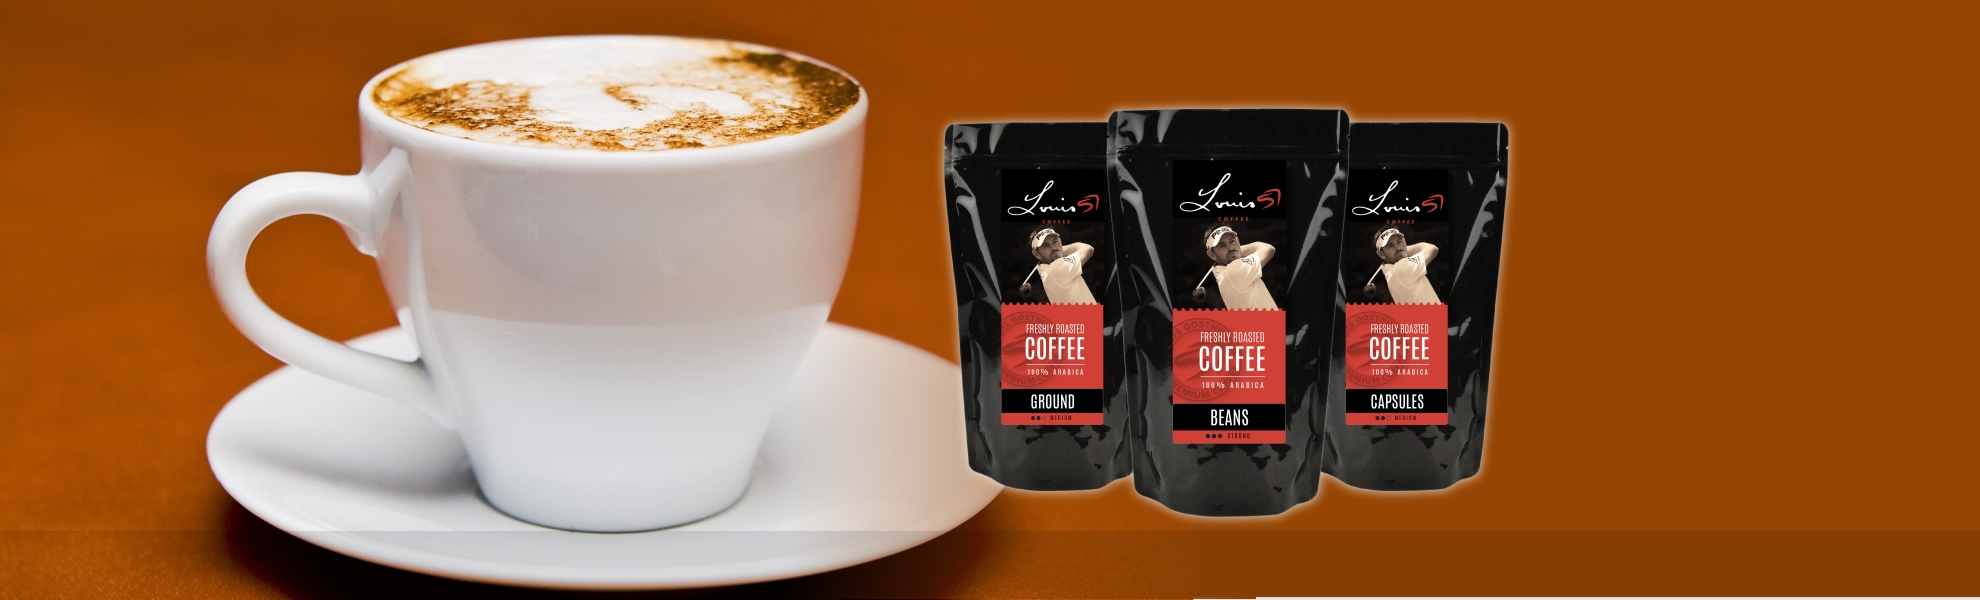 LN0008 L57 Online website elements_rotating banners_COFFEE_coffee-02